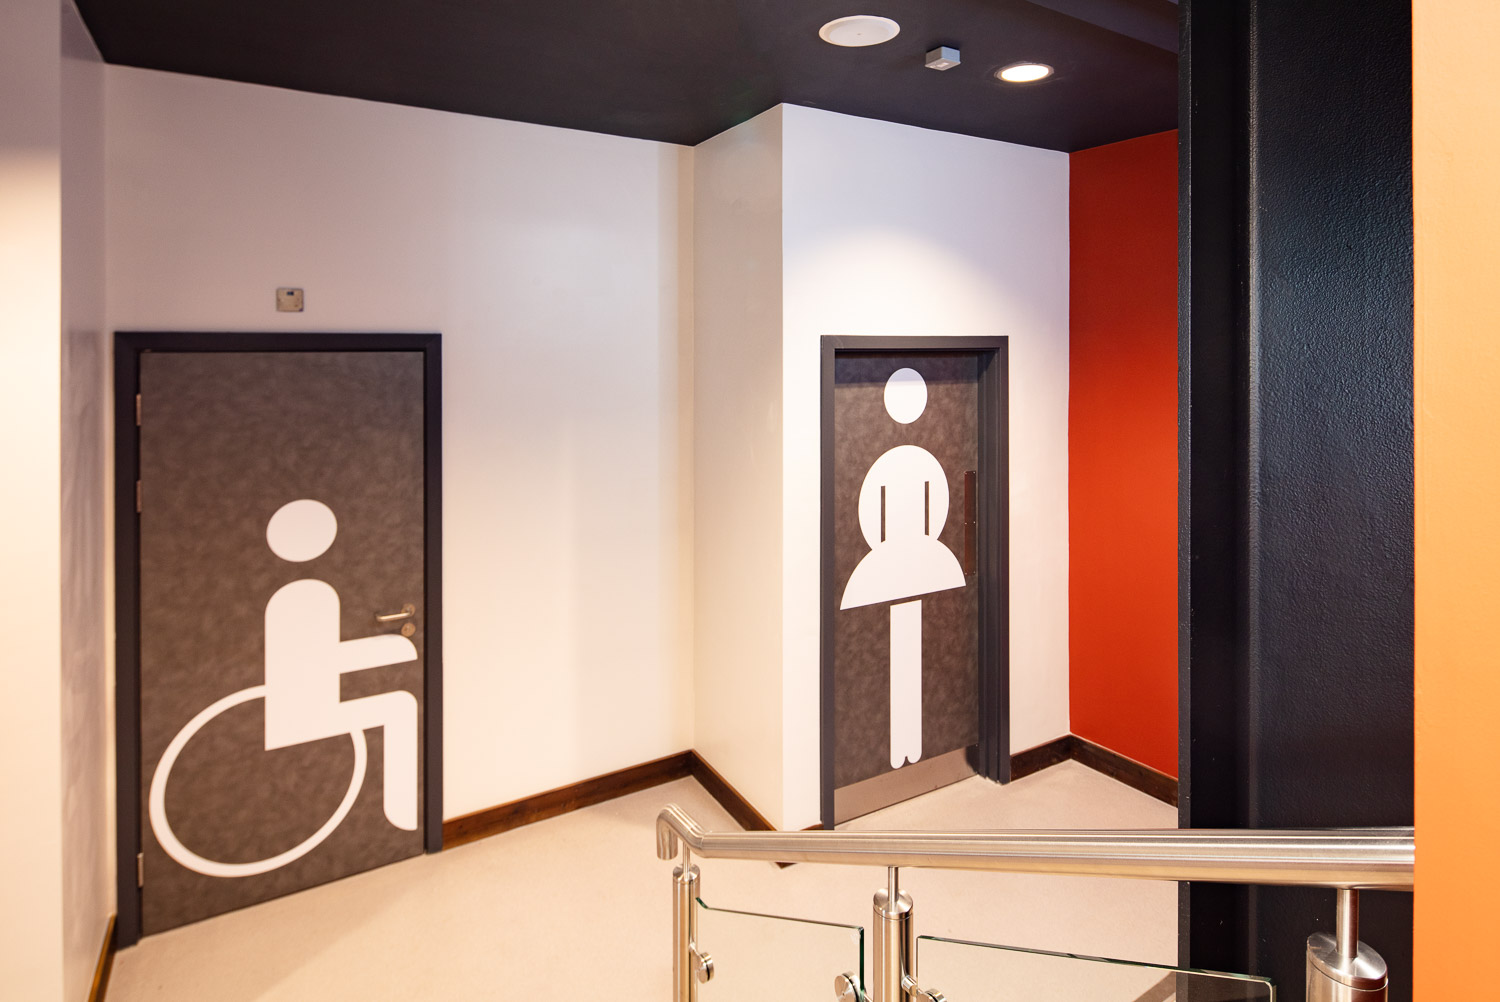 large format toilet signs in The Link